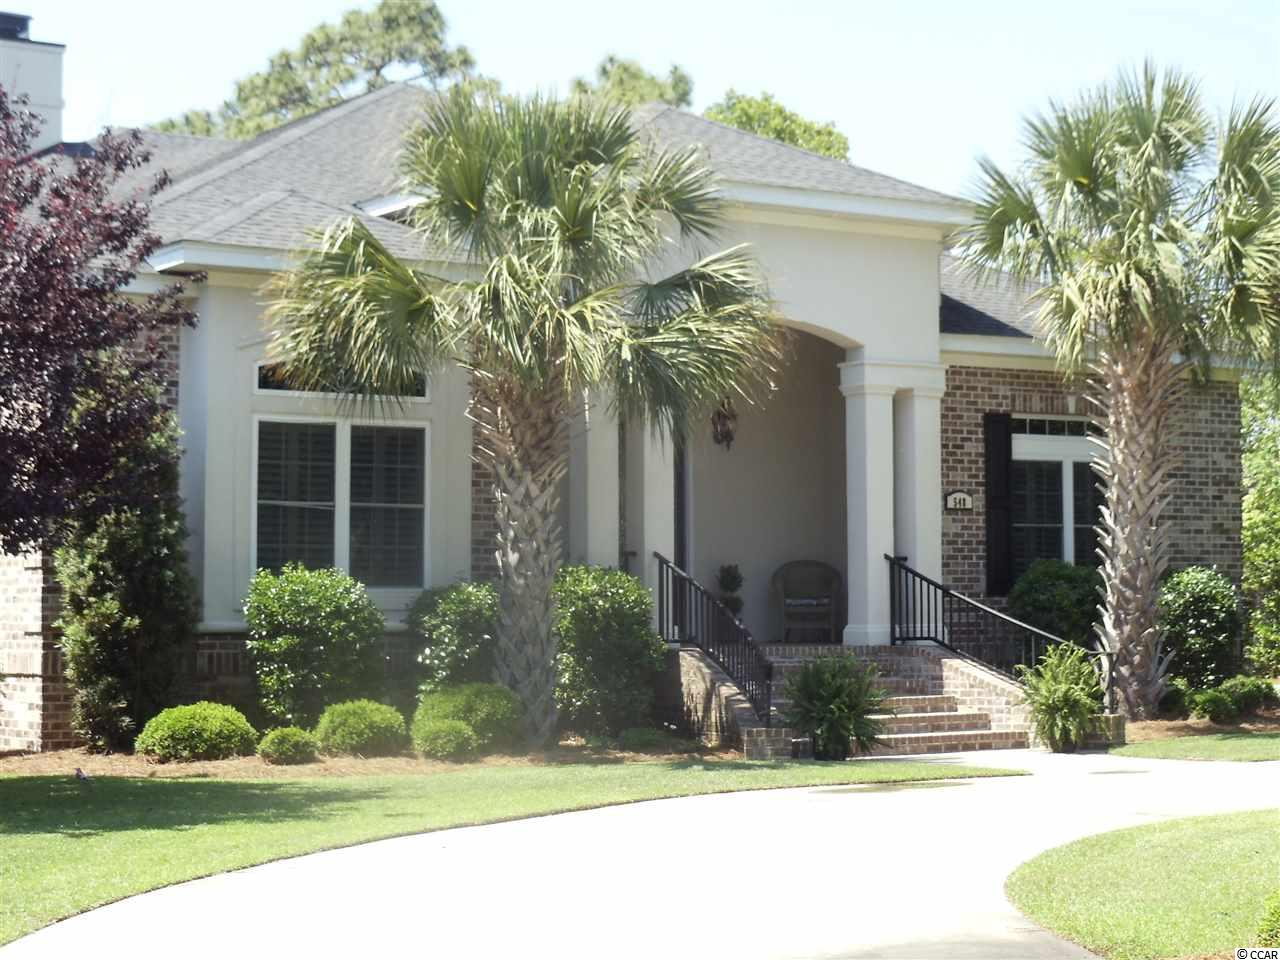 Additional photo for property listing at 548 Preservation Circle 548 Preservation Circle Pawleys Island, South Carolina 29585 United States